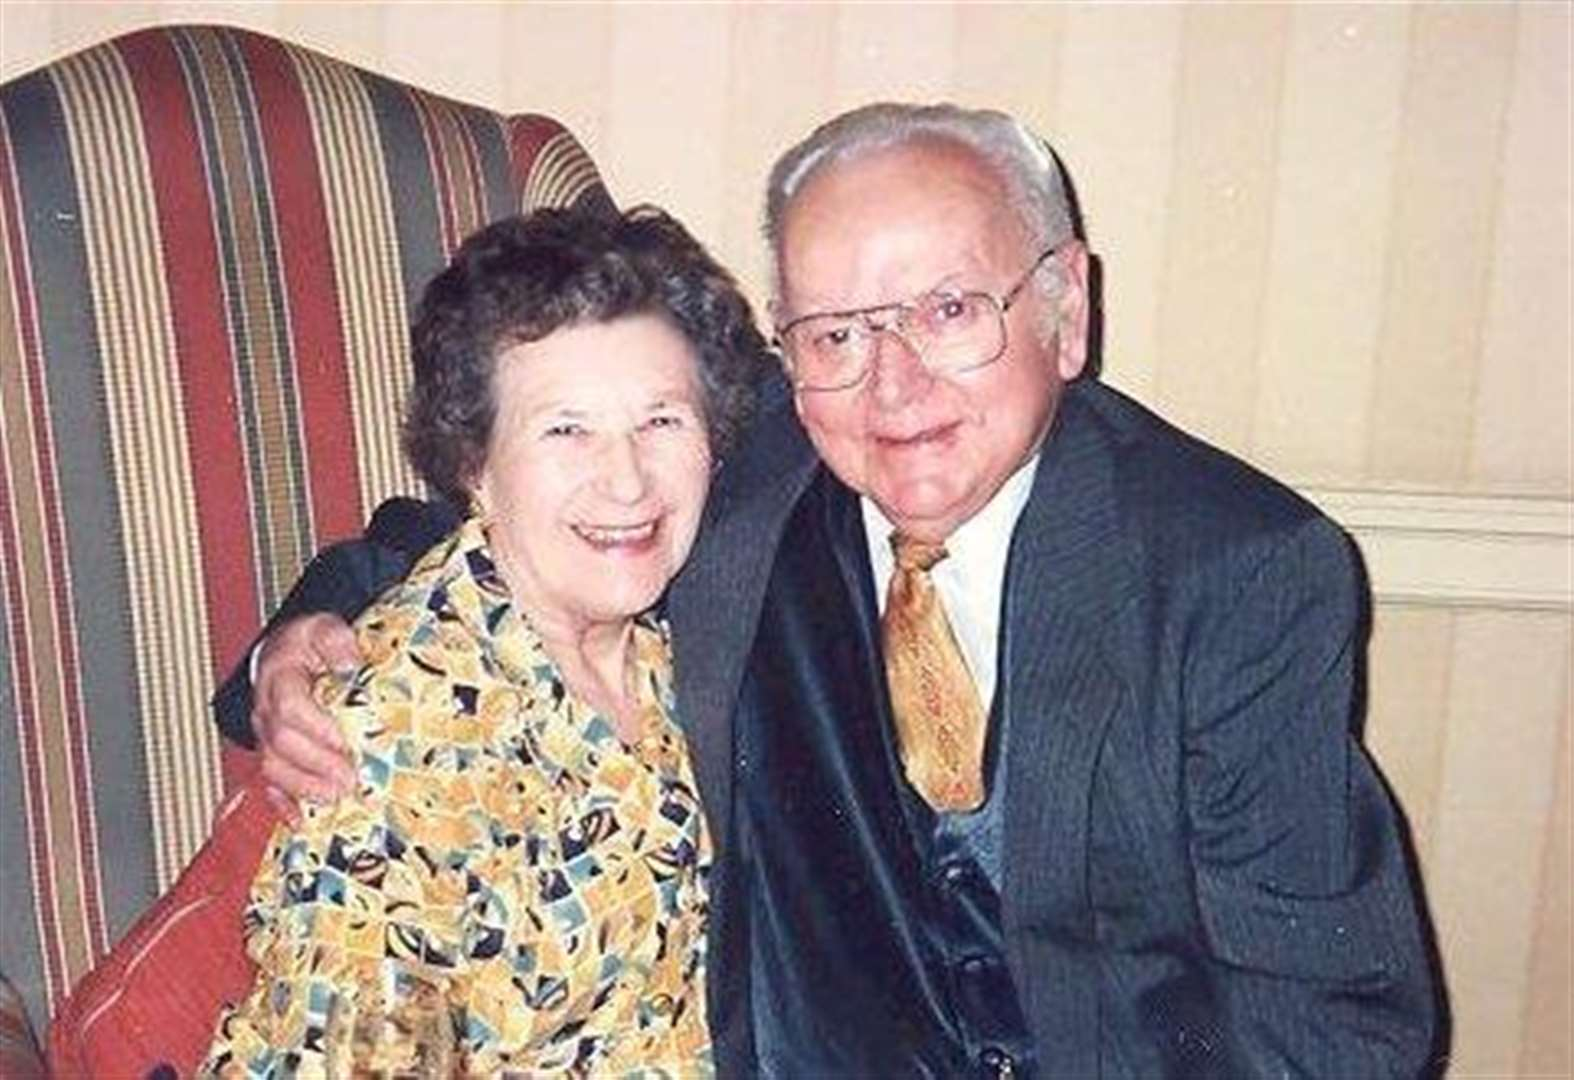 Six years on and the murder case of Wisbech pensioner Una Crown remains open and unsolved